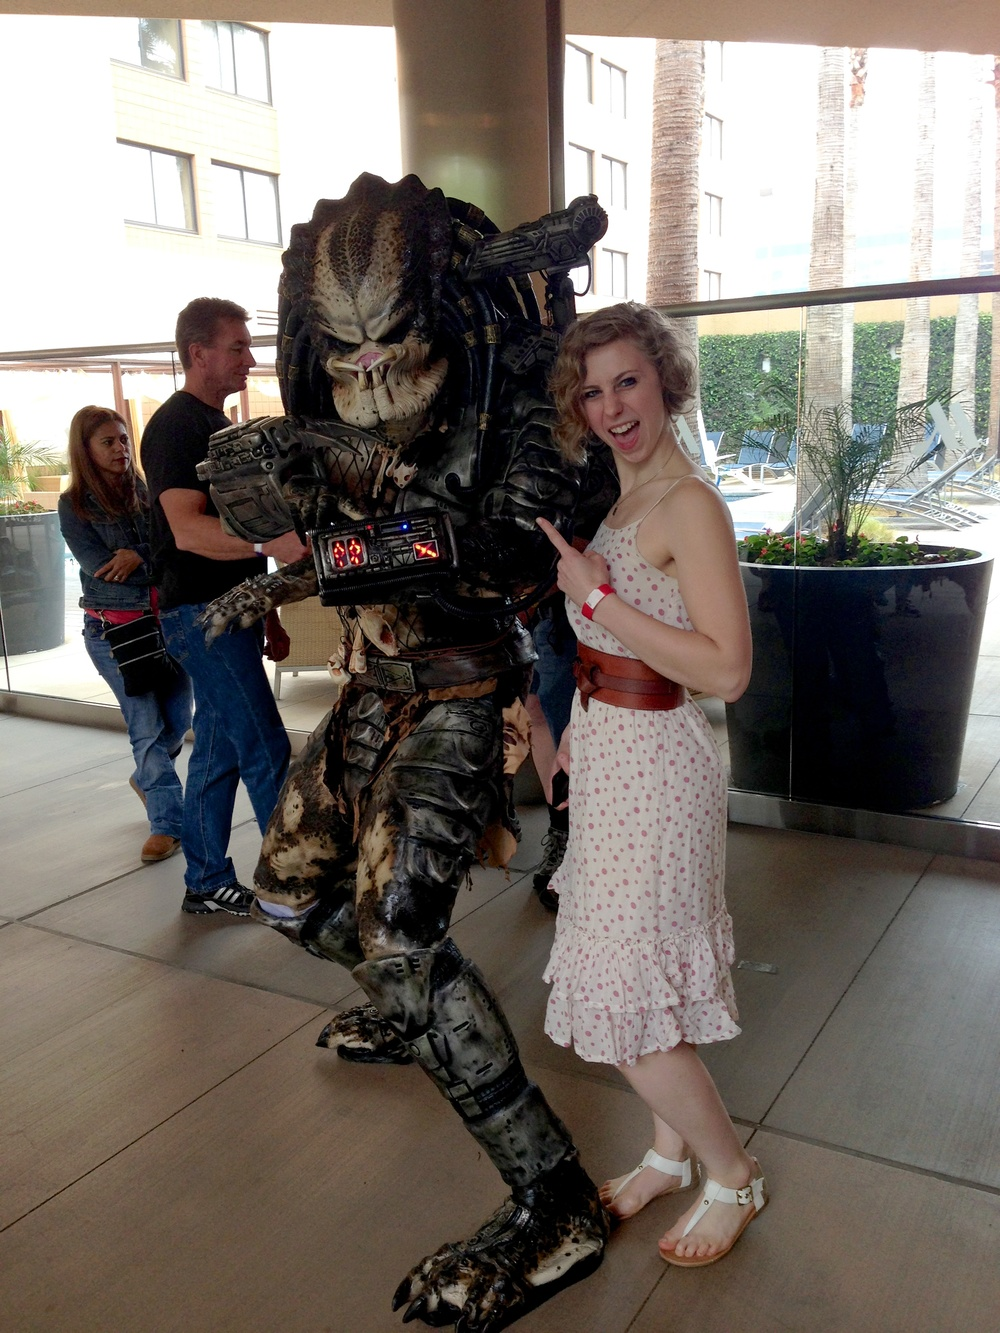 Alexis found the Predator!